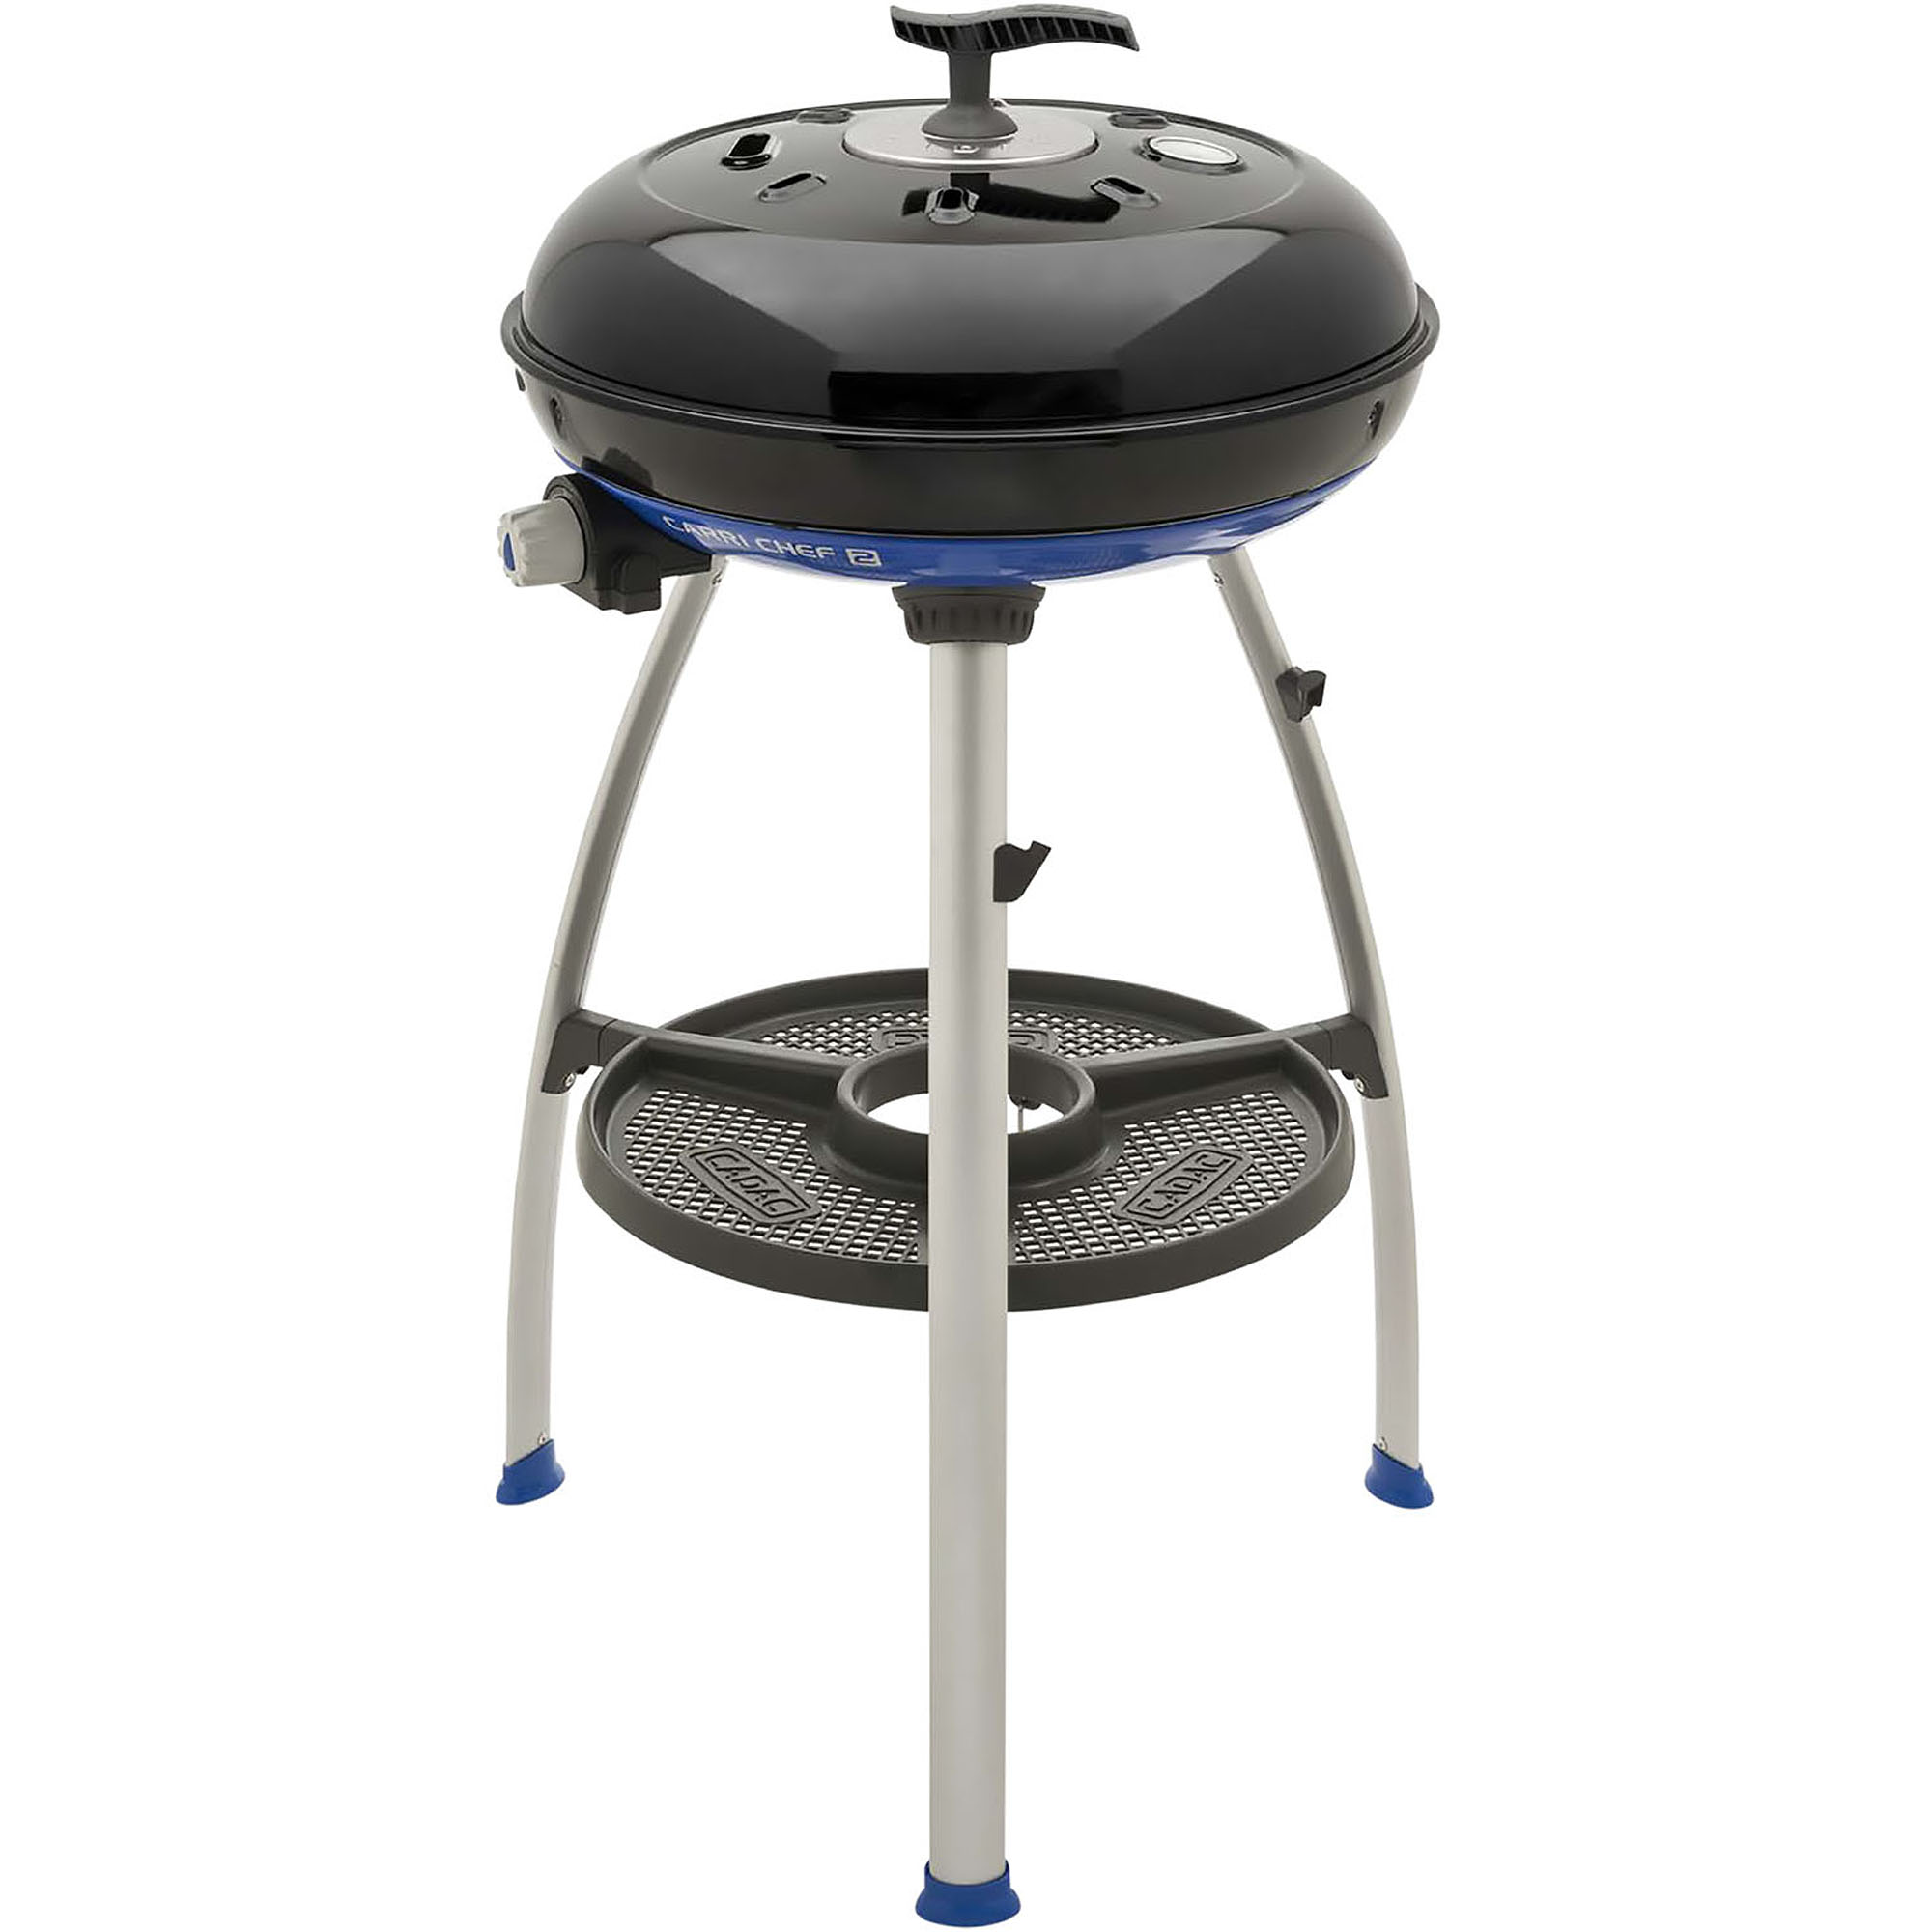 Cadac Carri Chef 2 Outdoor Gas Grill with Pot Stand and BBQ Grid